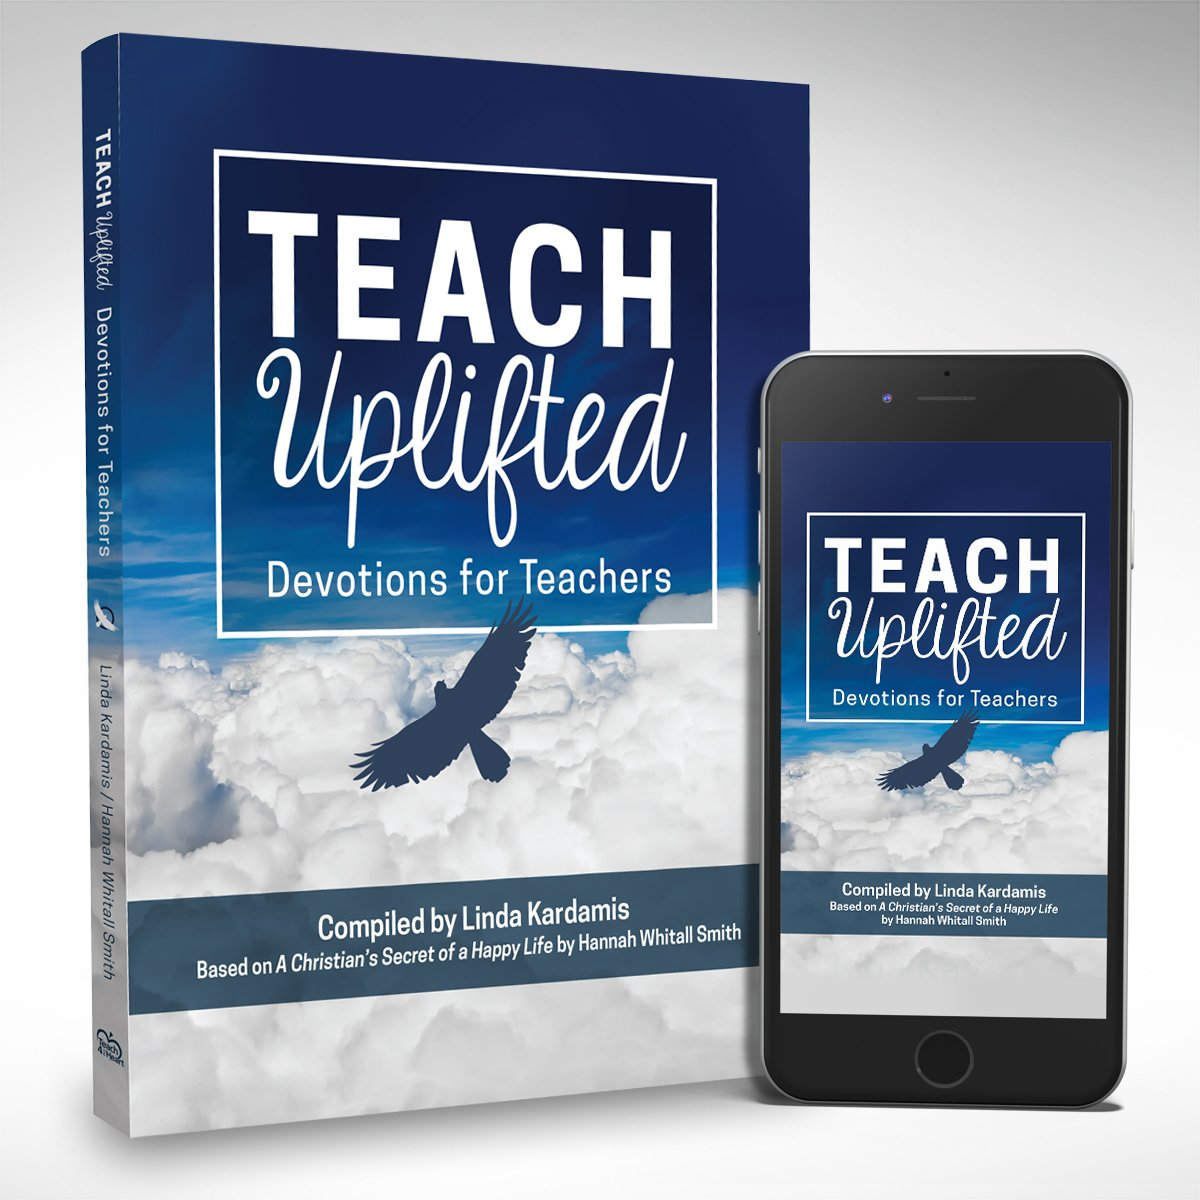 Teach Uplifted book cover and ebook on mobile